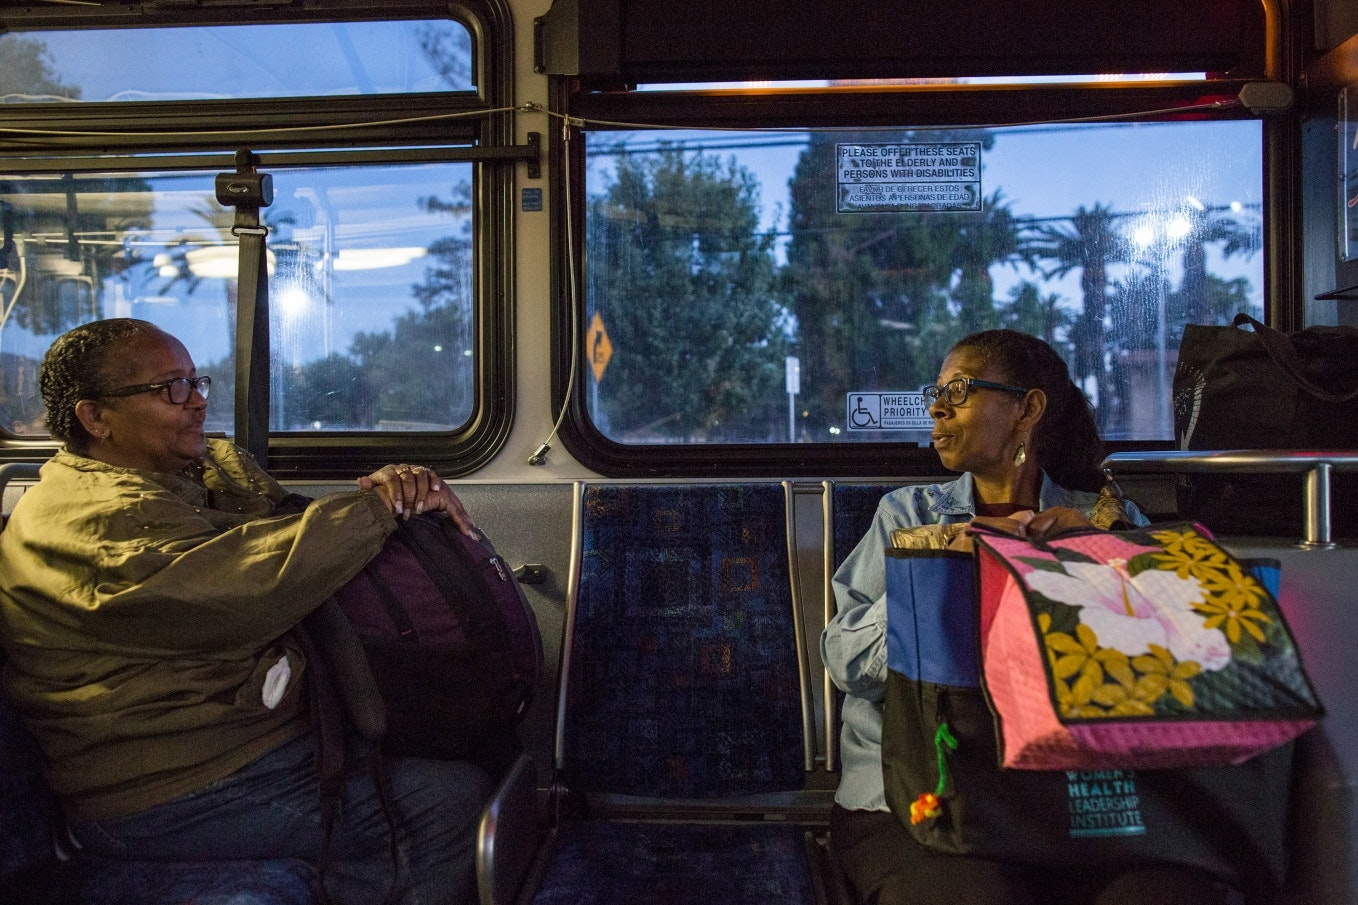 Two women sitting on a bus at dawn